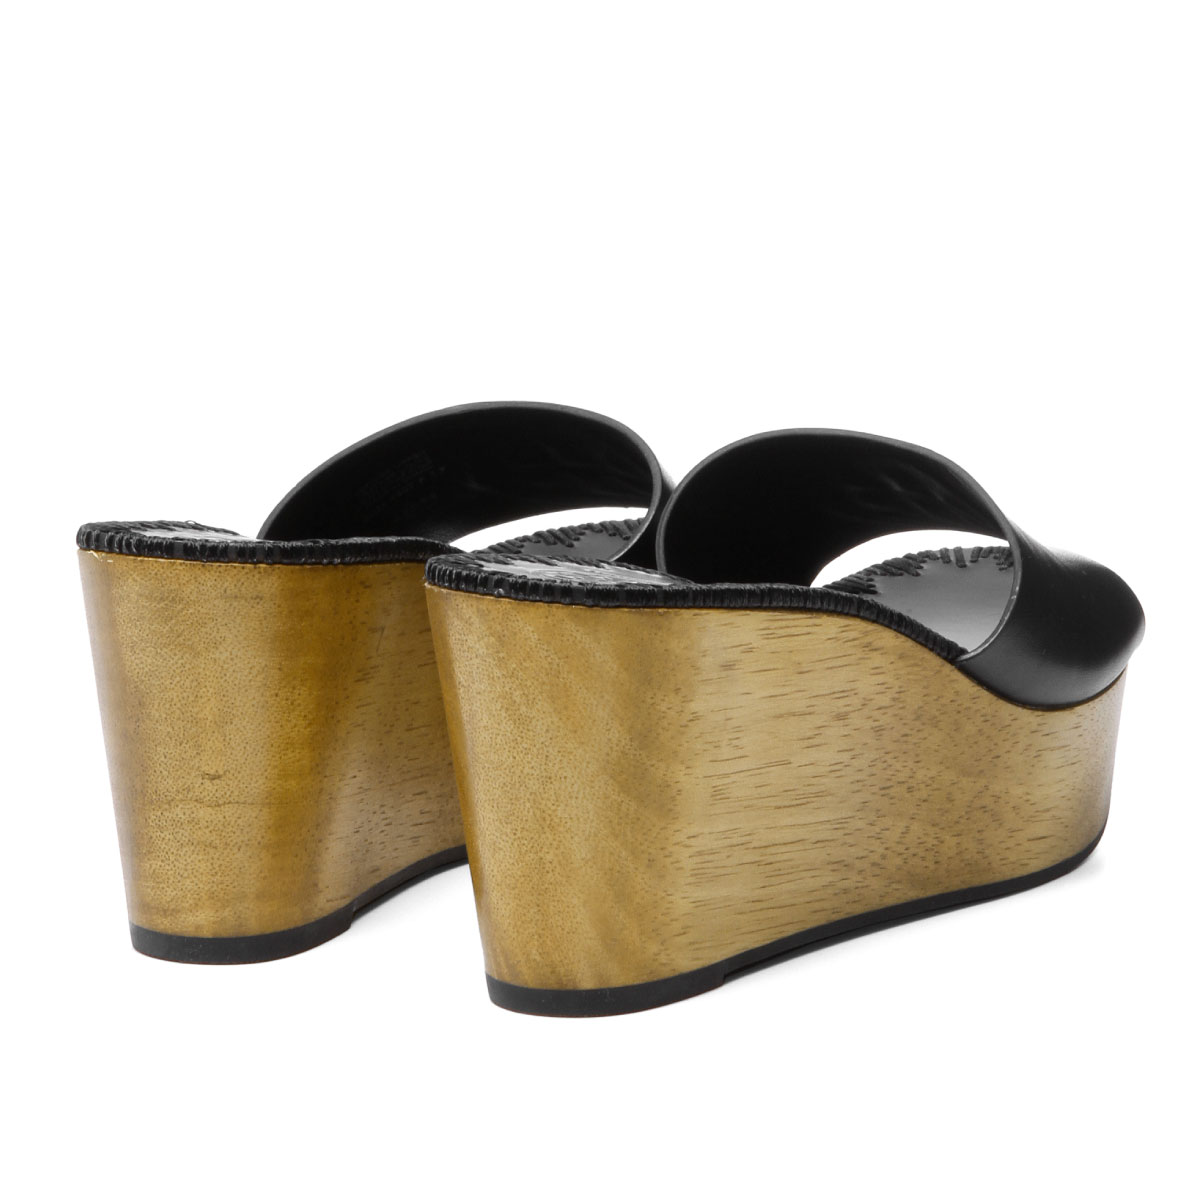 47b876ff3ce ... Tolly Birch TORY BURCH shoes Lady's 47092 006 wedge sandals PATTY patty  PERFECT BLACK black ...